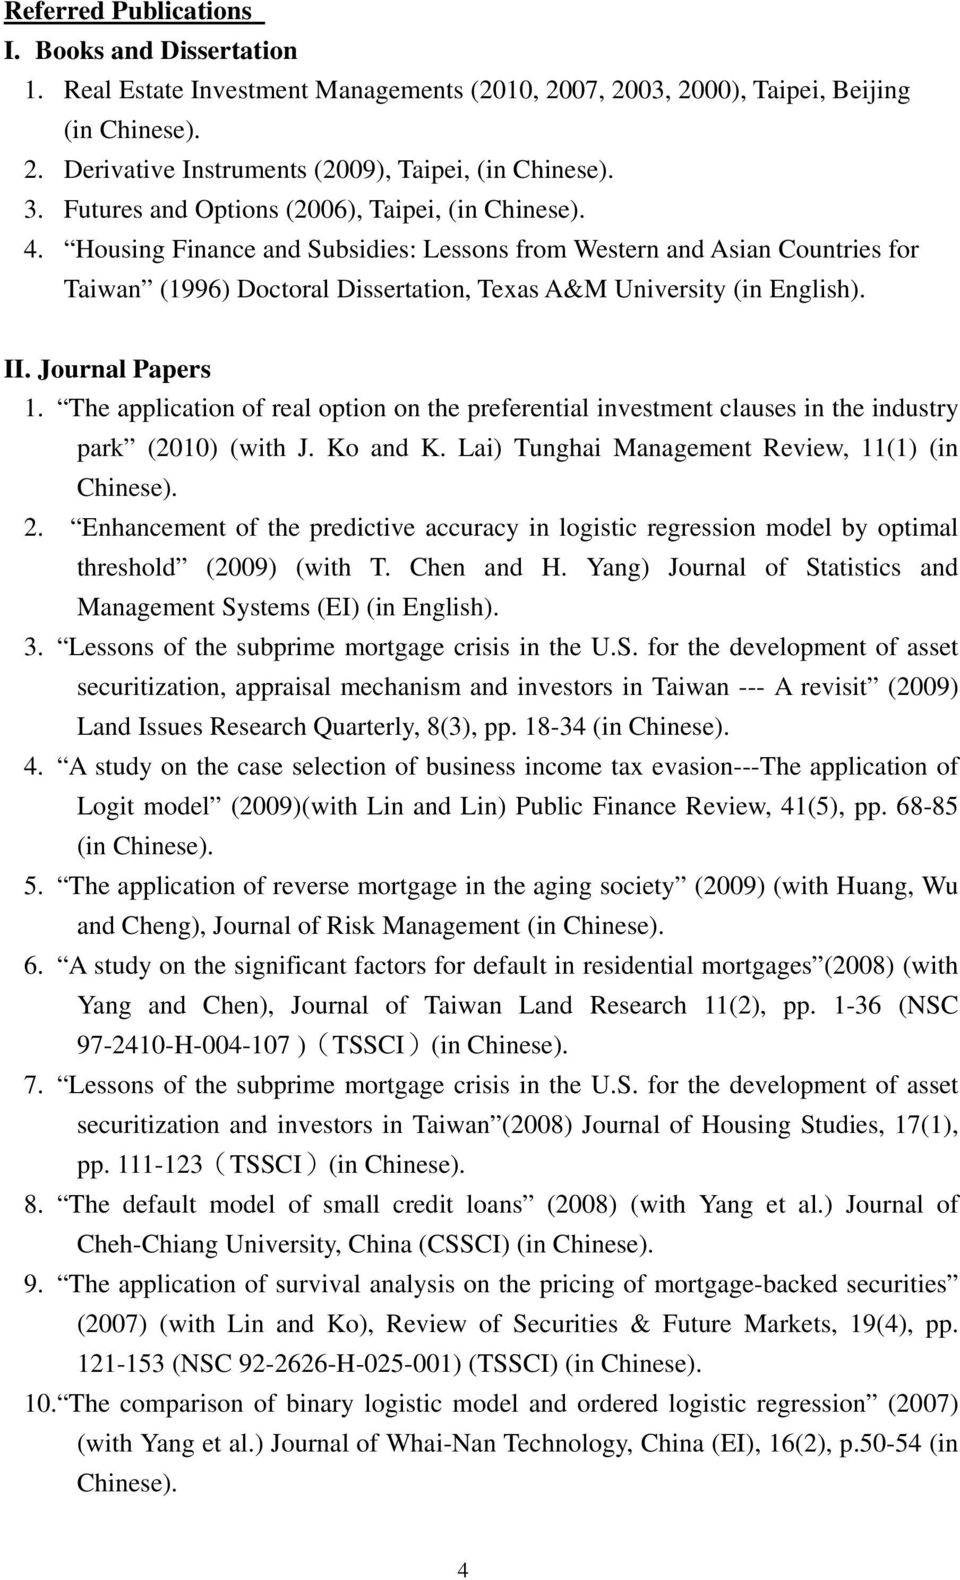 II. Journal Papers 1. The application of real option on the preferential investment clauses in the industry park (2010) (with J. Ko and K. Lai) Tunghai Management Review, 11(1) (in Chinese). 2.